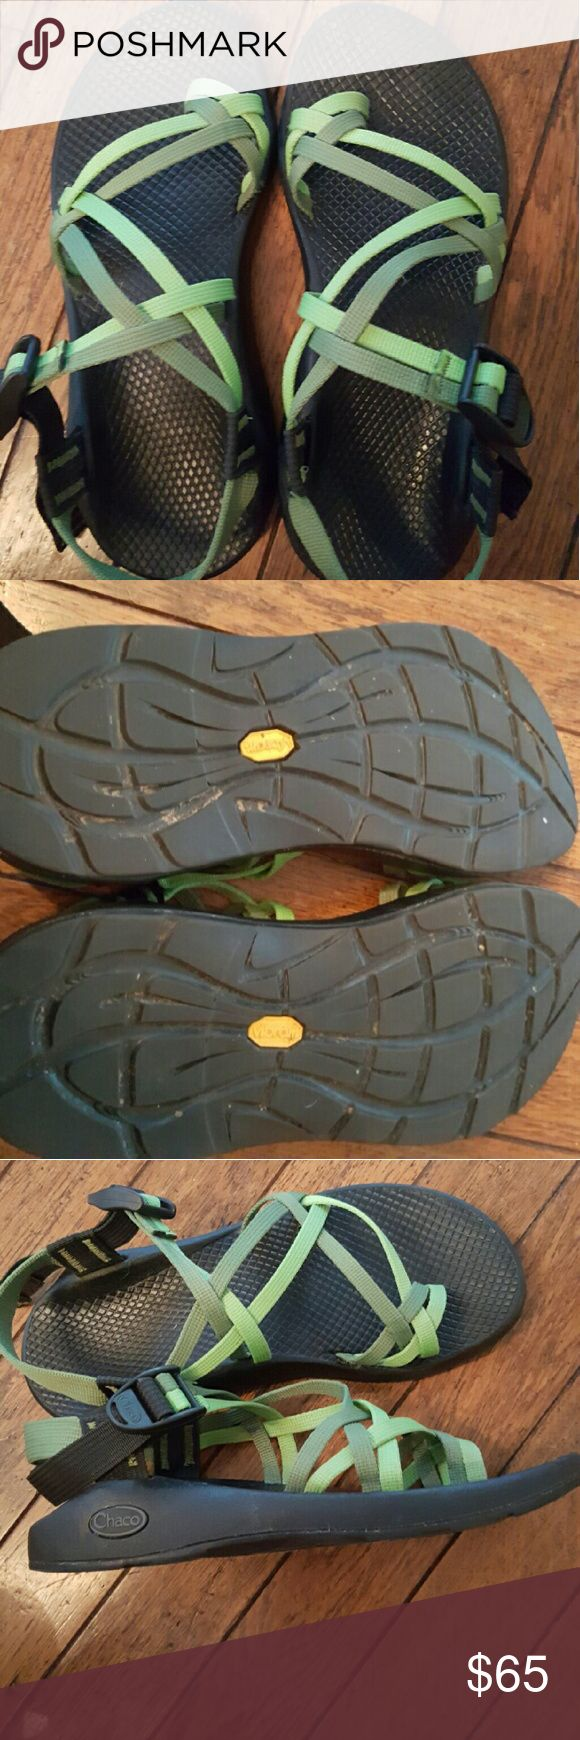 Womens Chaco Sandals Double strap, toe loop, 2-tone green....EXCELLENT/PERFECT CONDITION!! Chacos Shoes Sandals